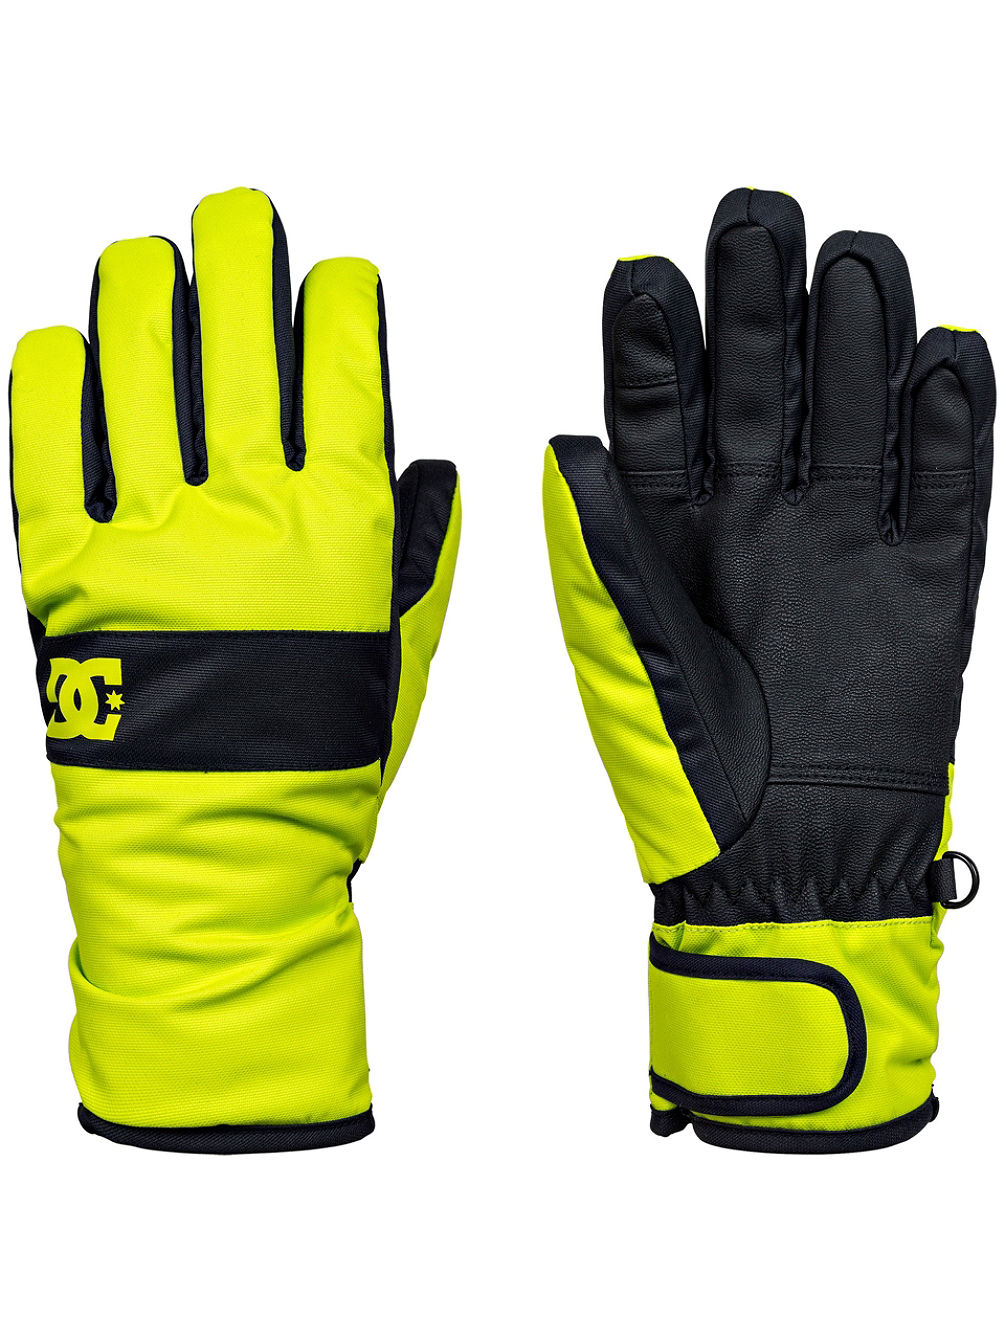 Franchise Gloves